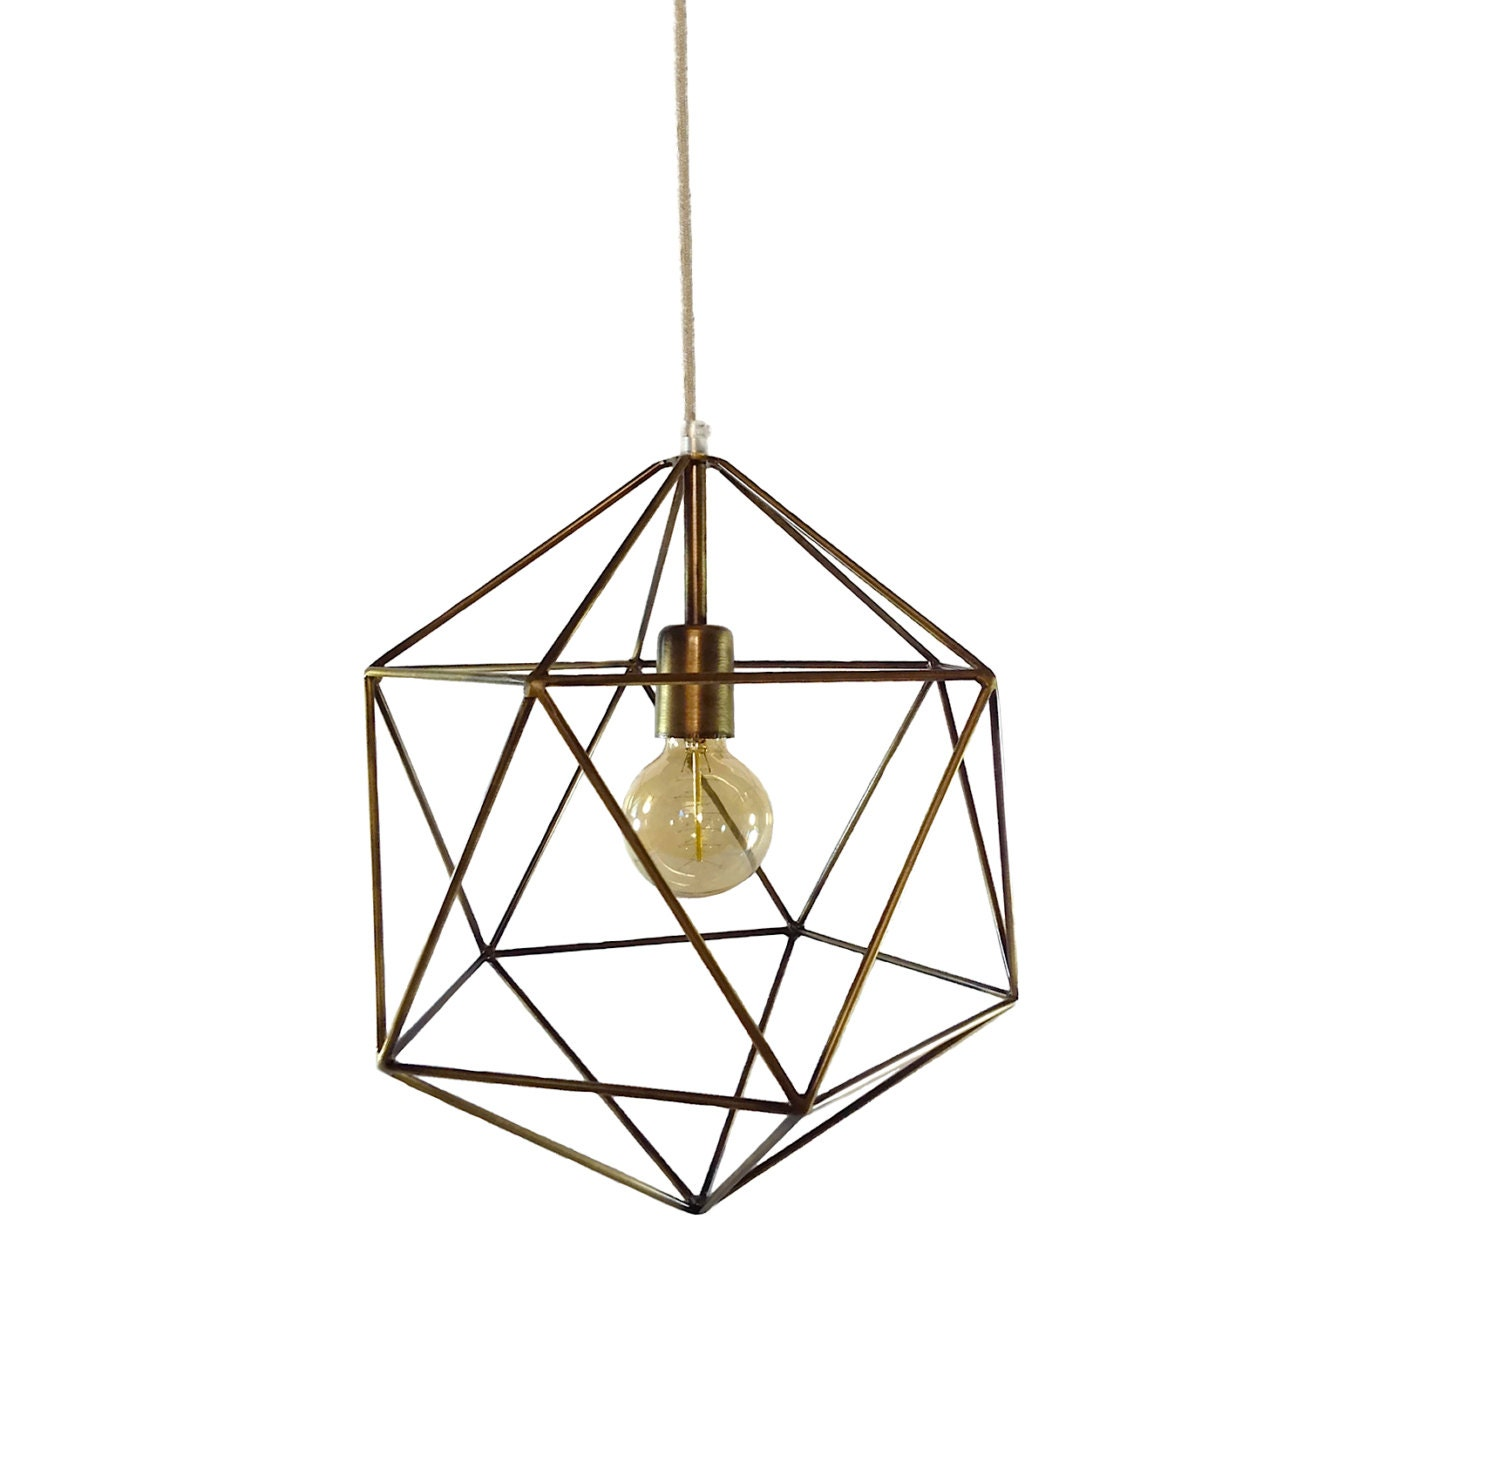 Bronze Geometric Pendant Light Handmade Hanging Light Cage